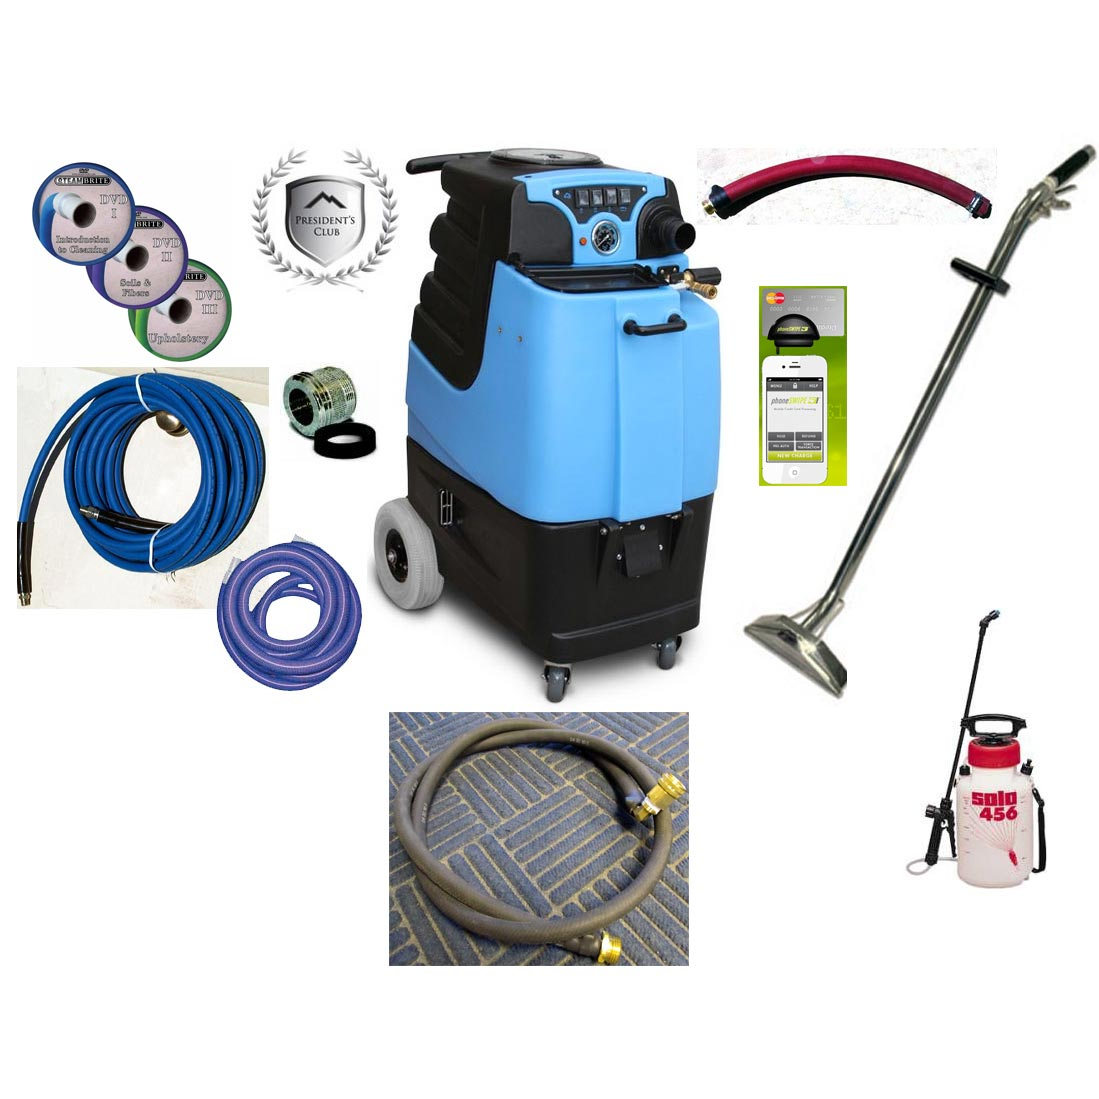 Mytee LTD5LX Basic 15gal 500psi Dual LX Vacs Auto Fill Auto Dump Carpet Upholstery Extractor Basic Starter Package LTD5-LX